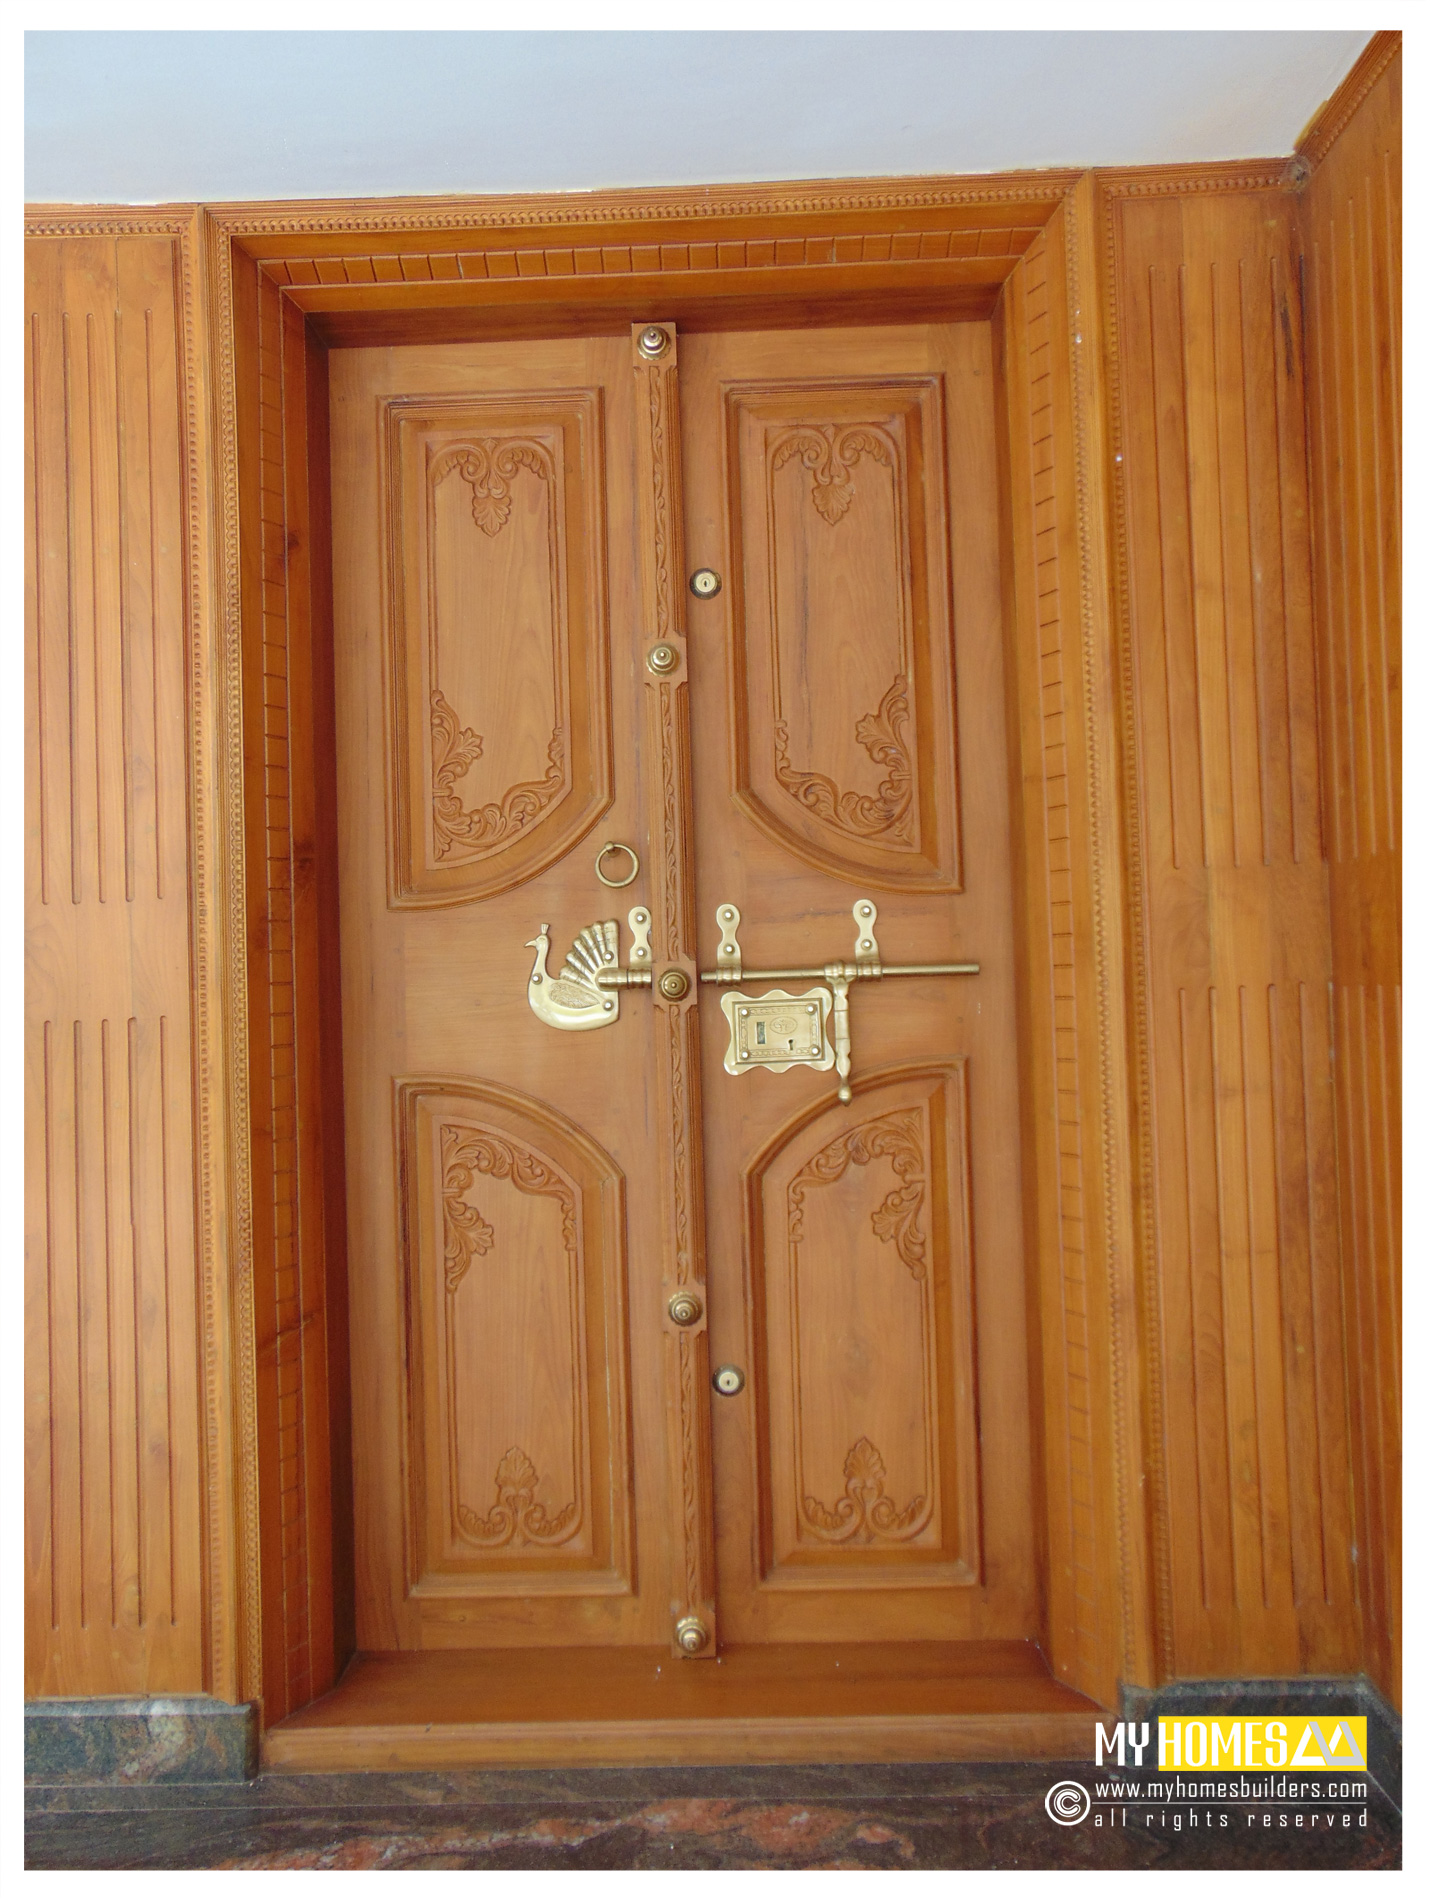 house door designs, homes door designs, front door designs, kerala house door designs, main door designs